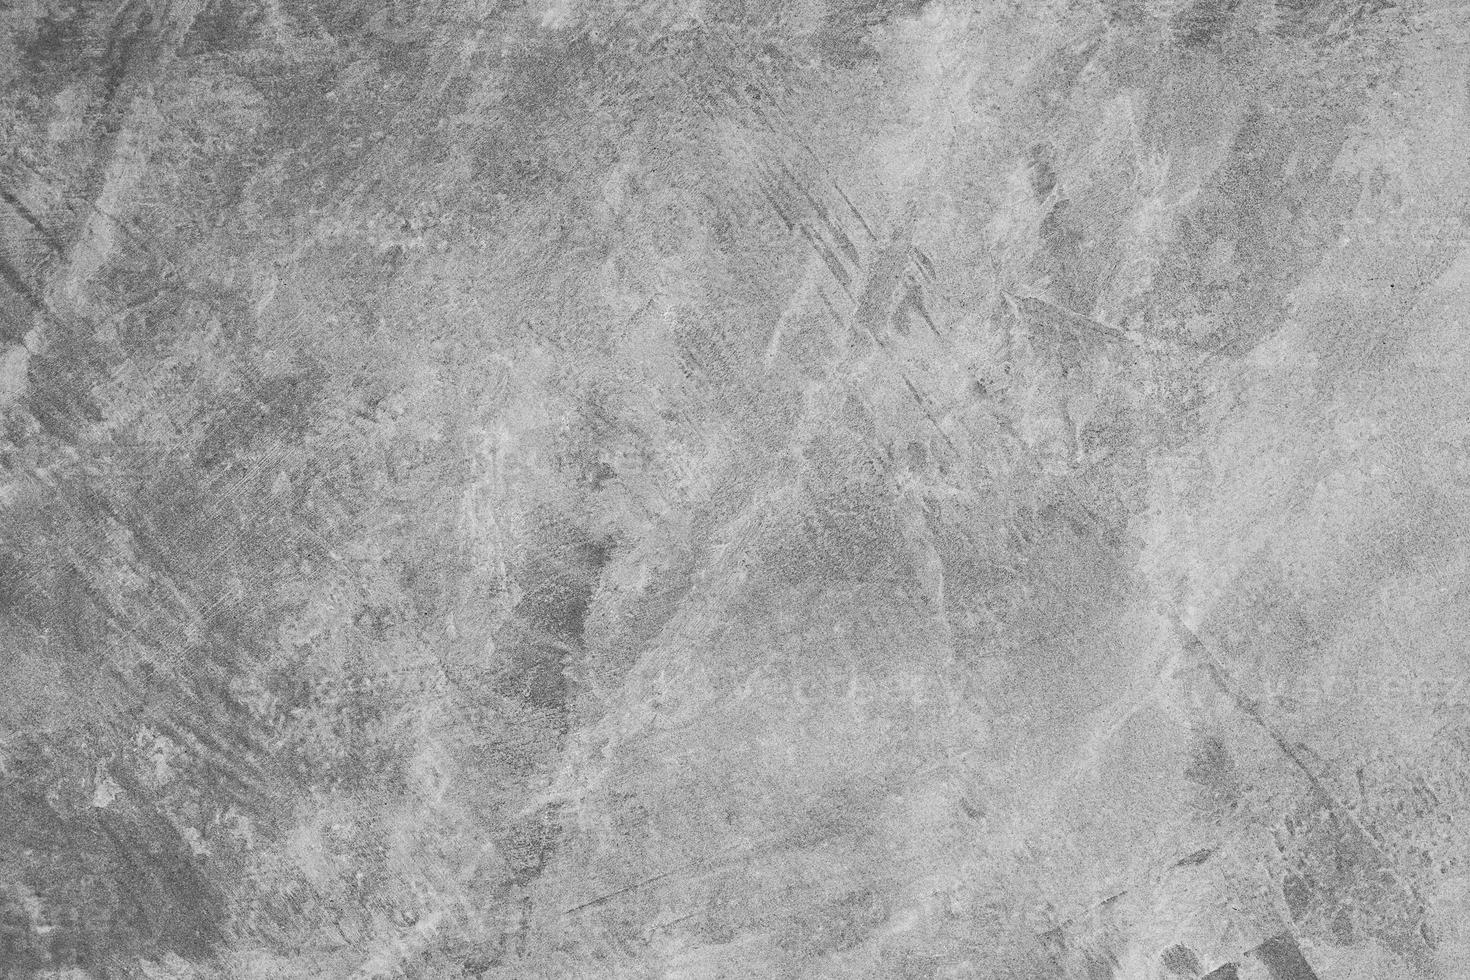 Design on cement and concrete wall for pattern photo